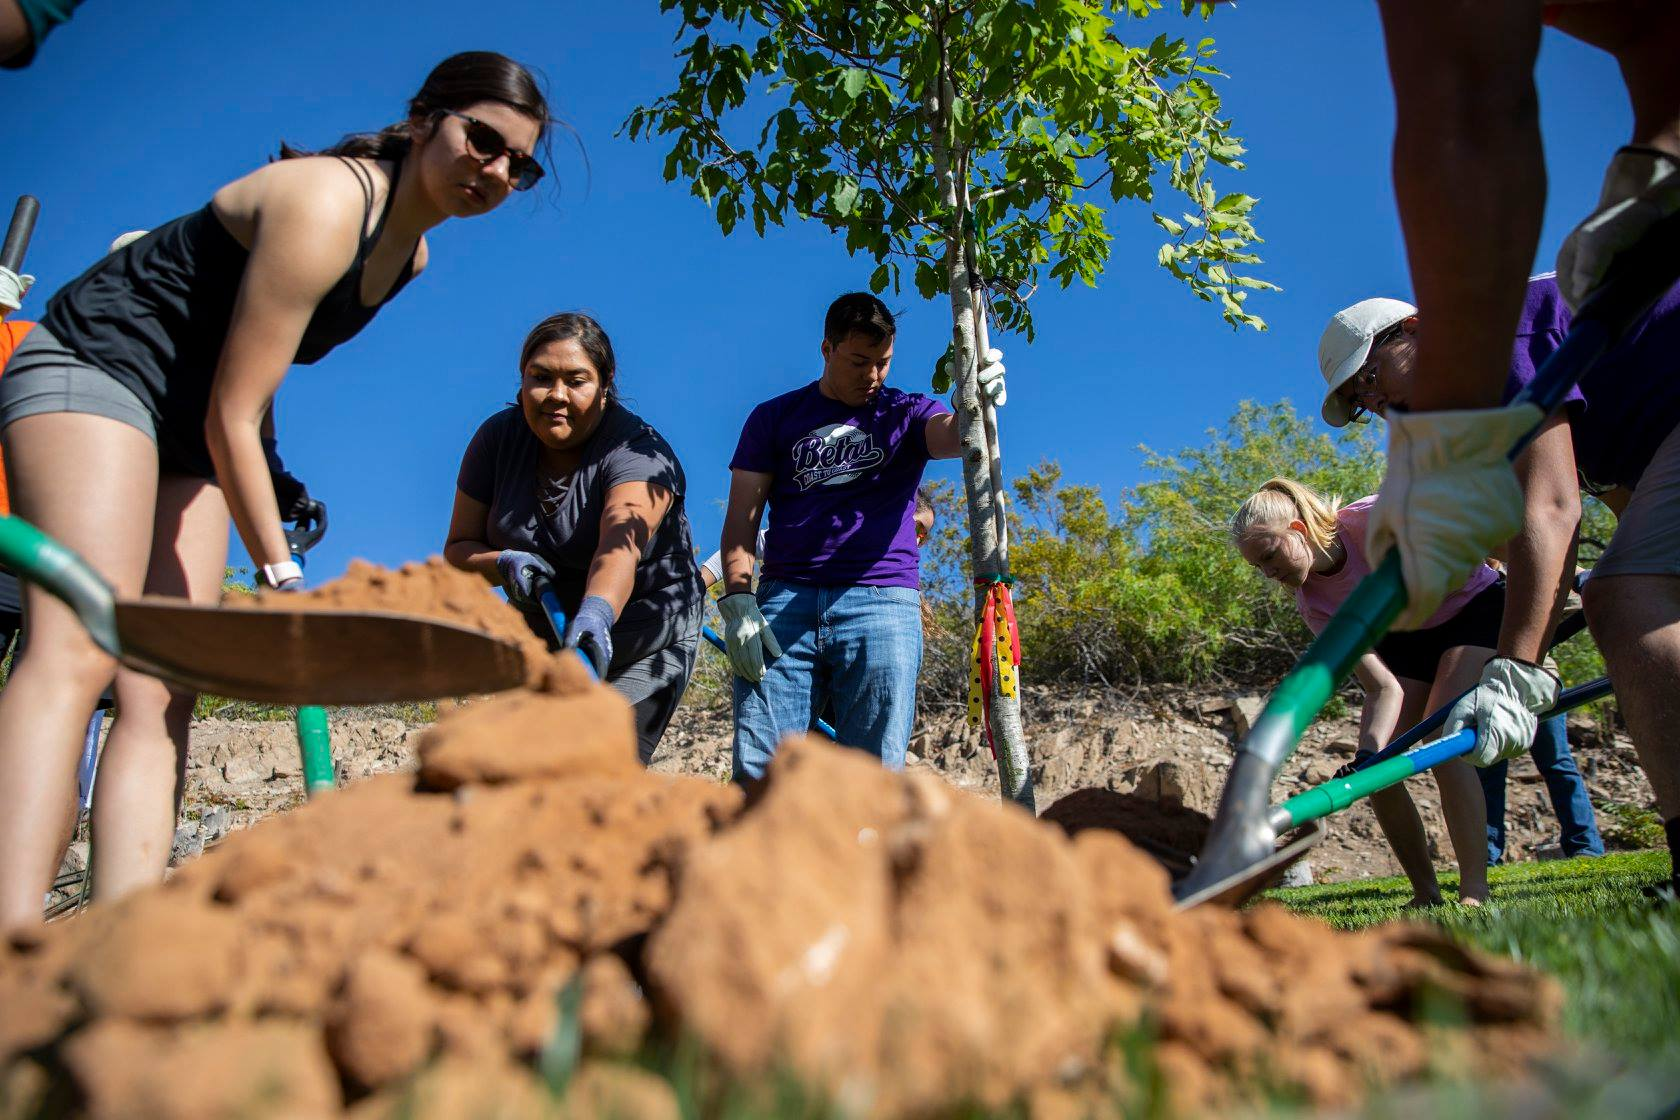 Students in UTEP Greek organizations celebrated Arbor Day in April by working with members of Facilities Services to make campus a little greener. Earlier this year, UTEP received a Tree Campus USA designation from the Arbor Day Foundation, validating the University's continuous efforts to be a sustainable green space.